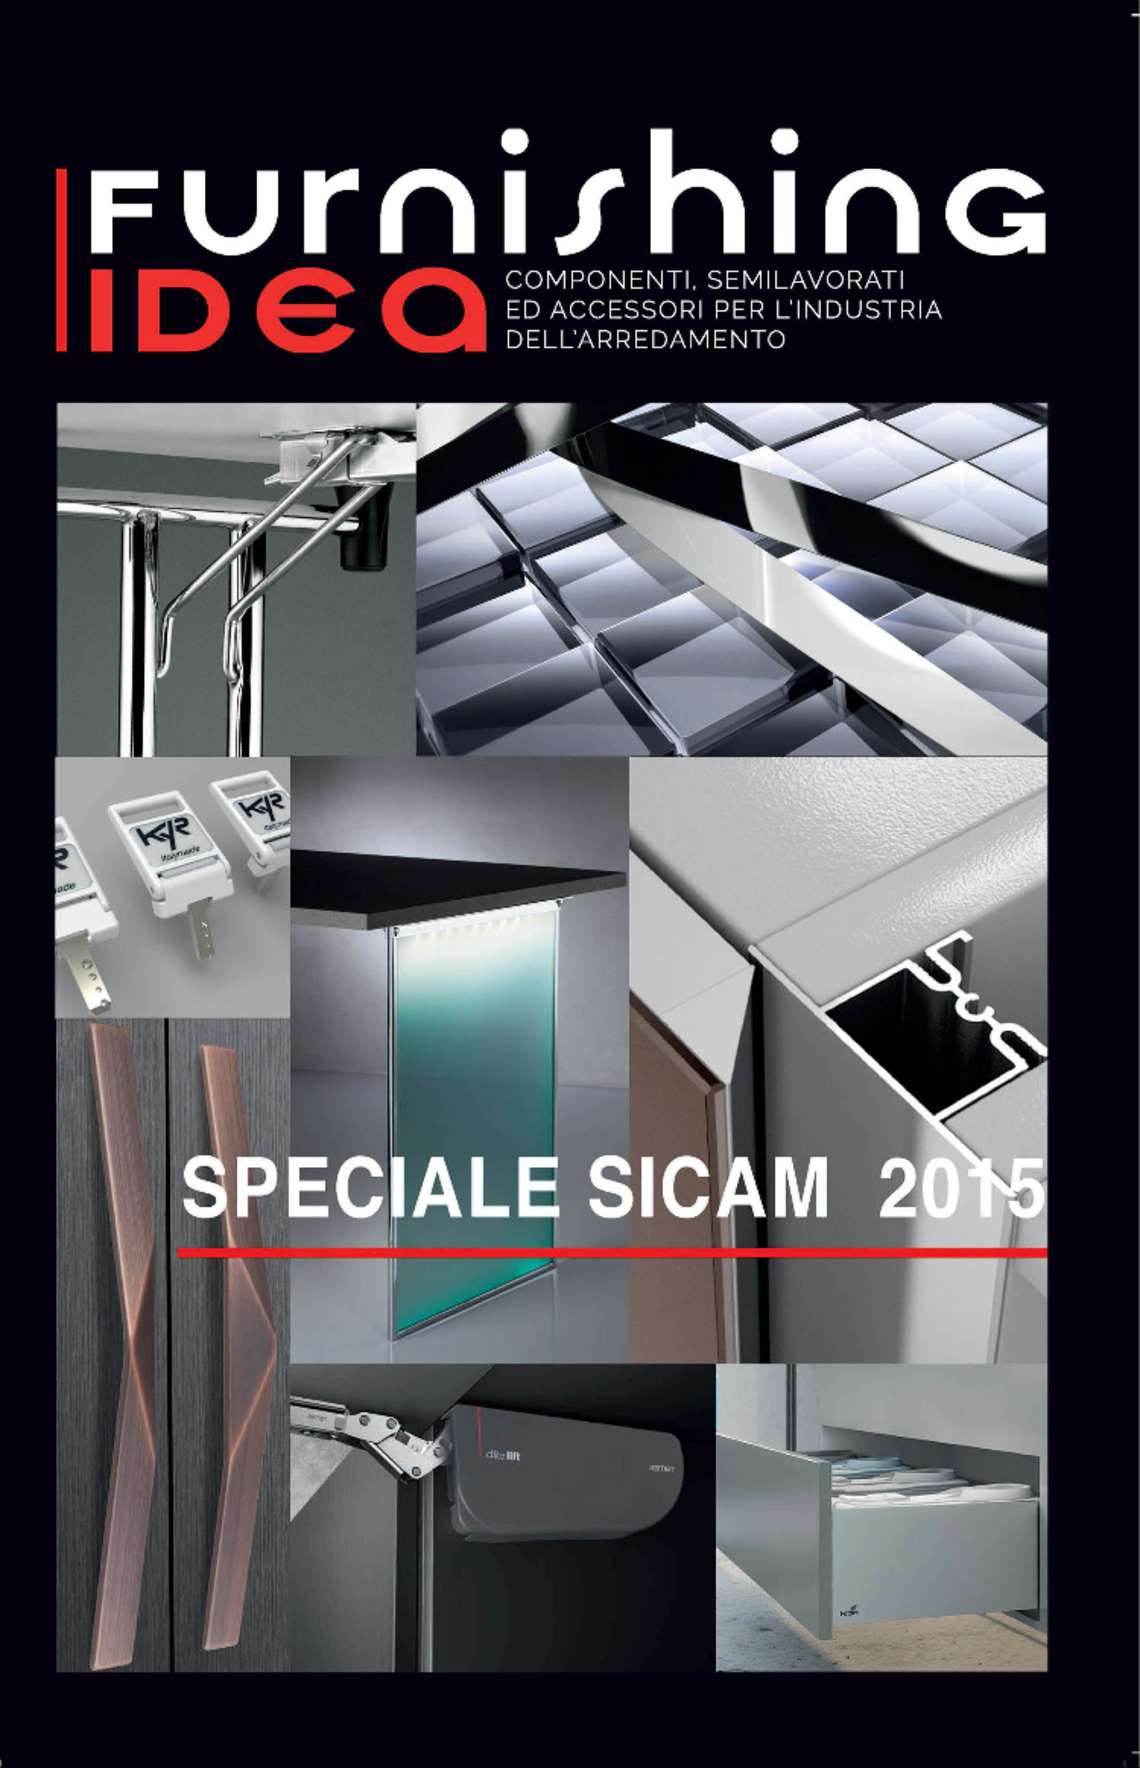 sicam-2015_journal_3_000.jpg